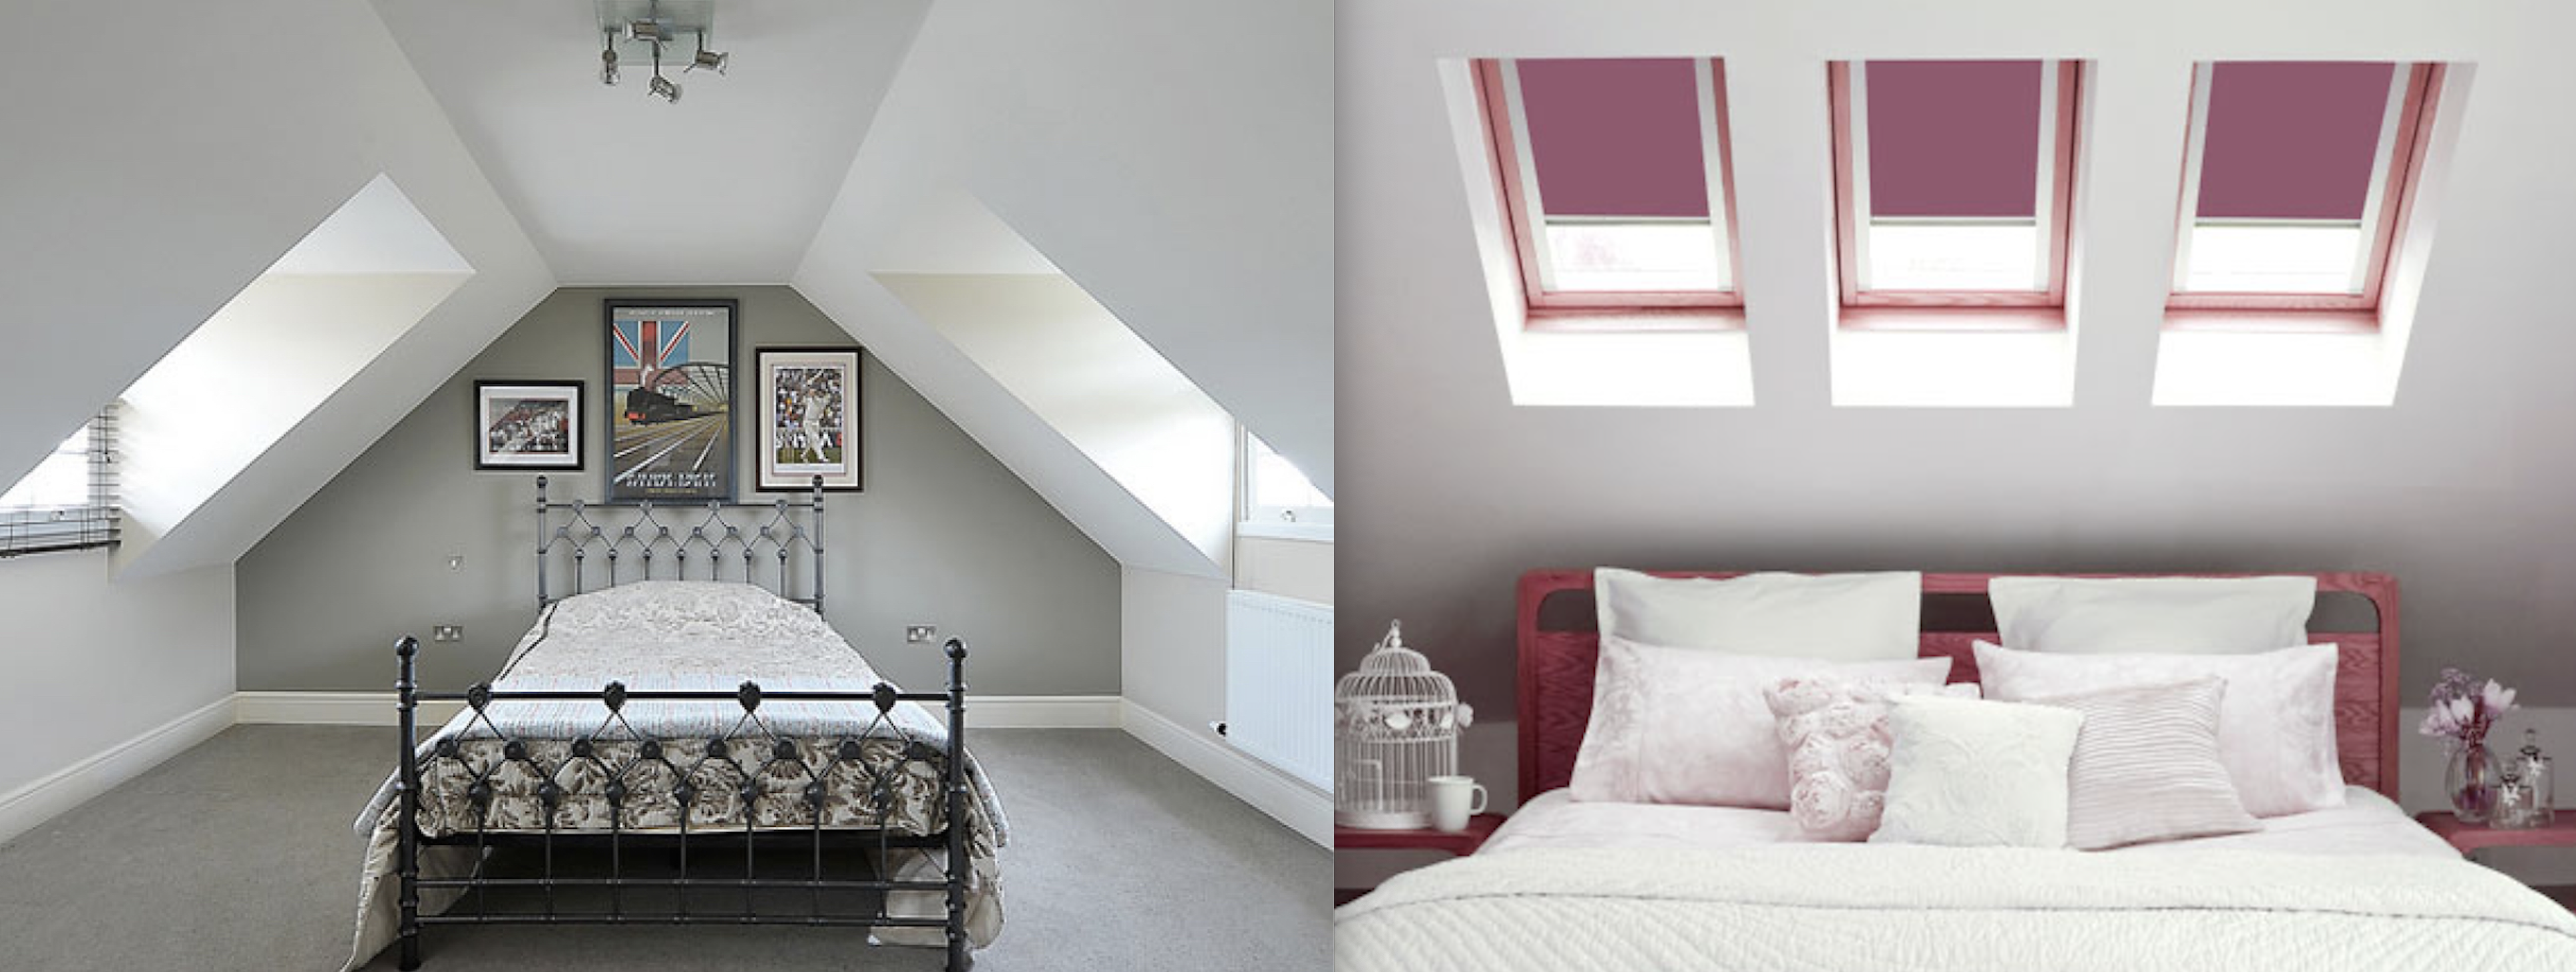 Beautiful dormer loft conversion in Longsight, creating a new master bedroom with private bathroom, walk in wardrobe and stunning new oak staircase.